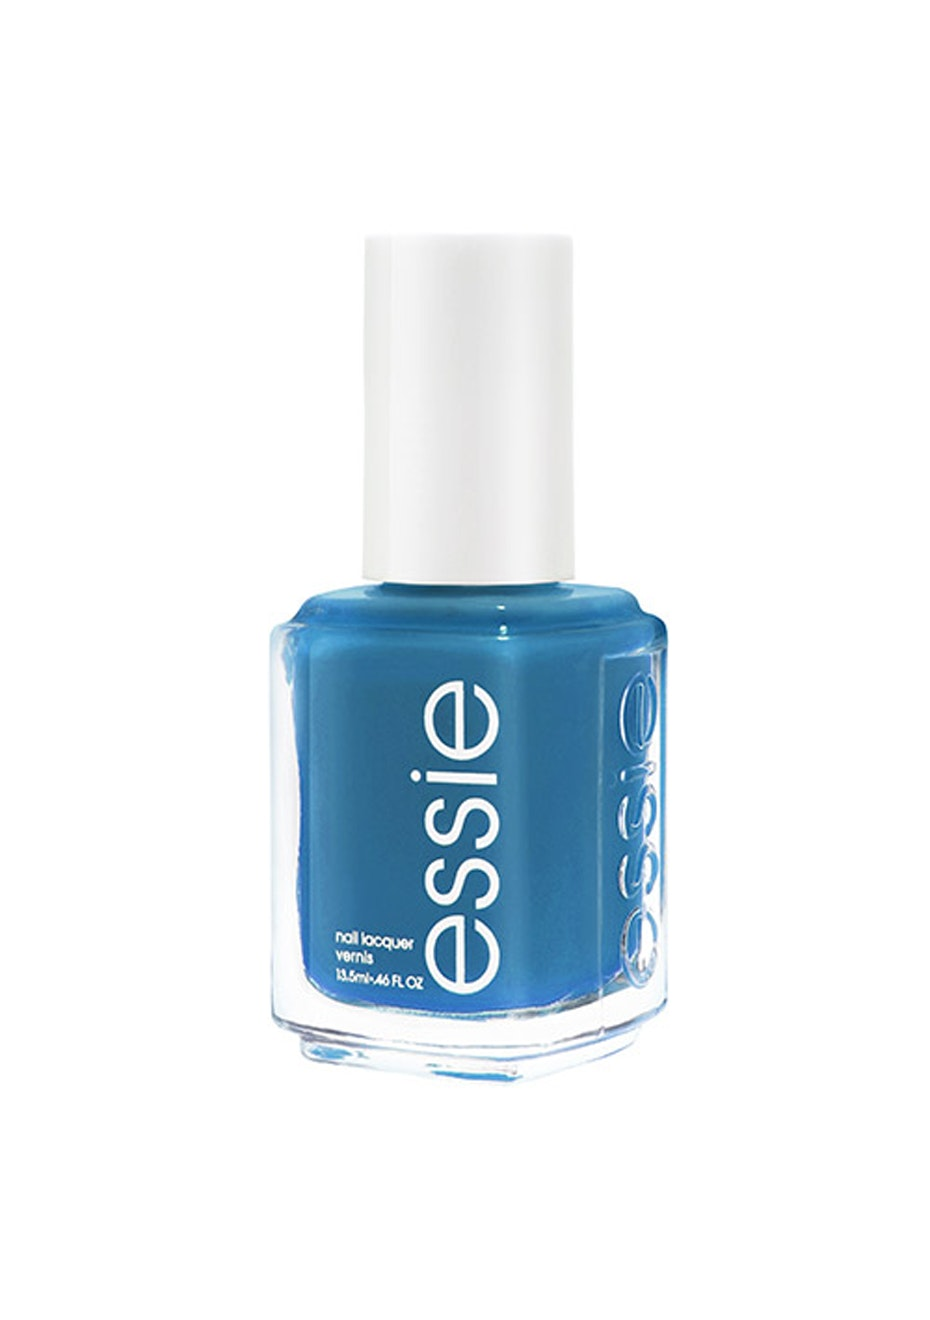 Essie Nail Colour #1057 HIDE & GO CHIC